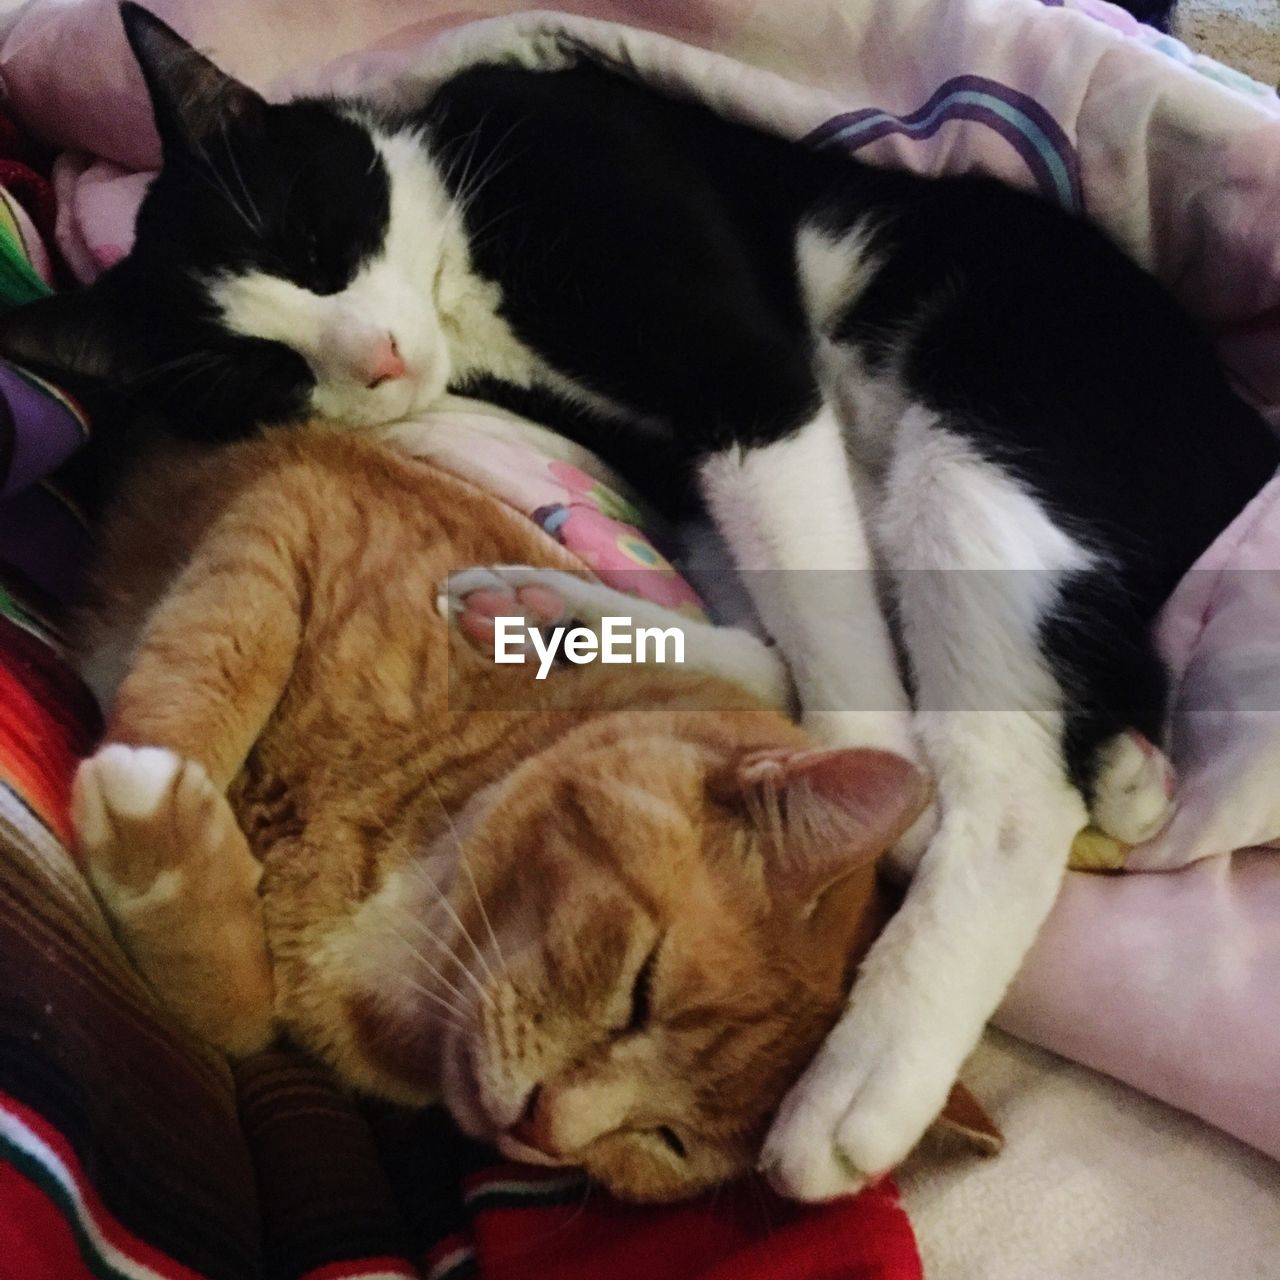 domestic cat, domestic animals, pets, animal themes, feline, mammal, cat, indoors, sleeping, one animal, relaxation, whisker, high angle view, lying down, bed, home interior, no people, close-up, day, kitten